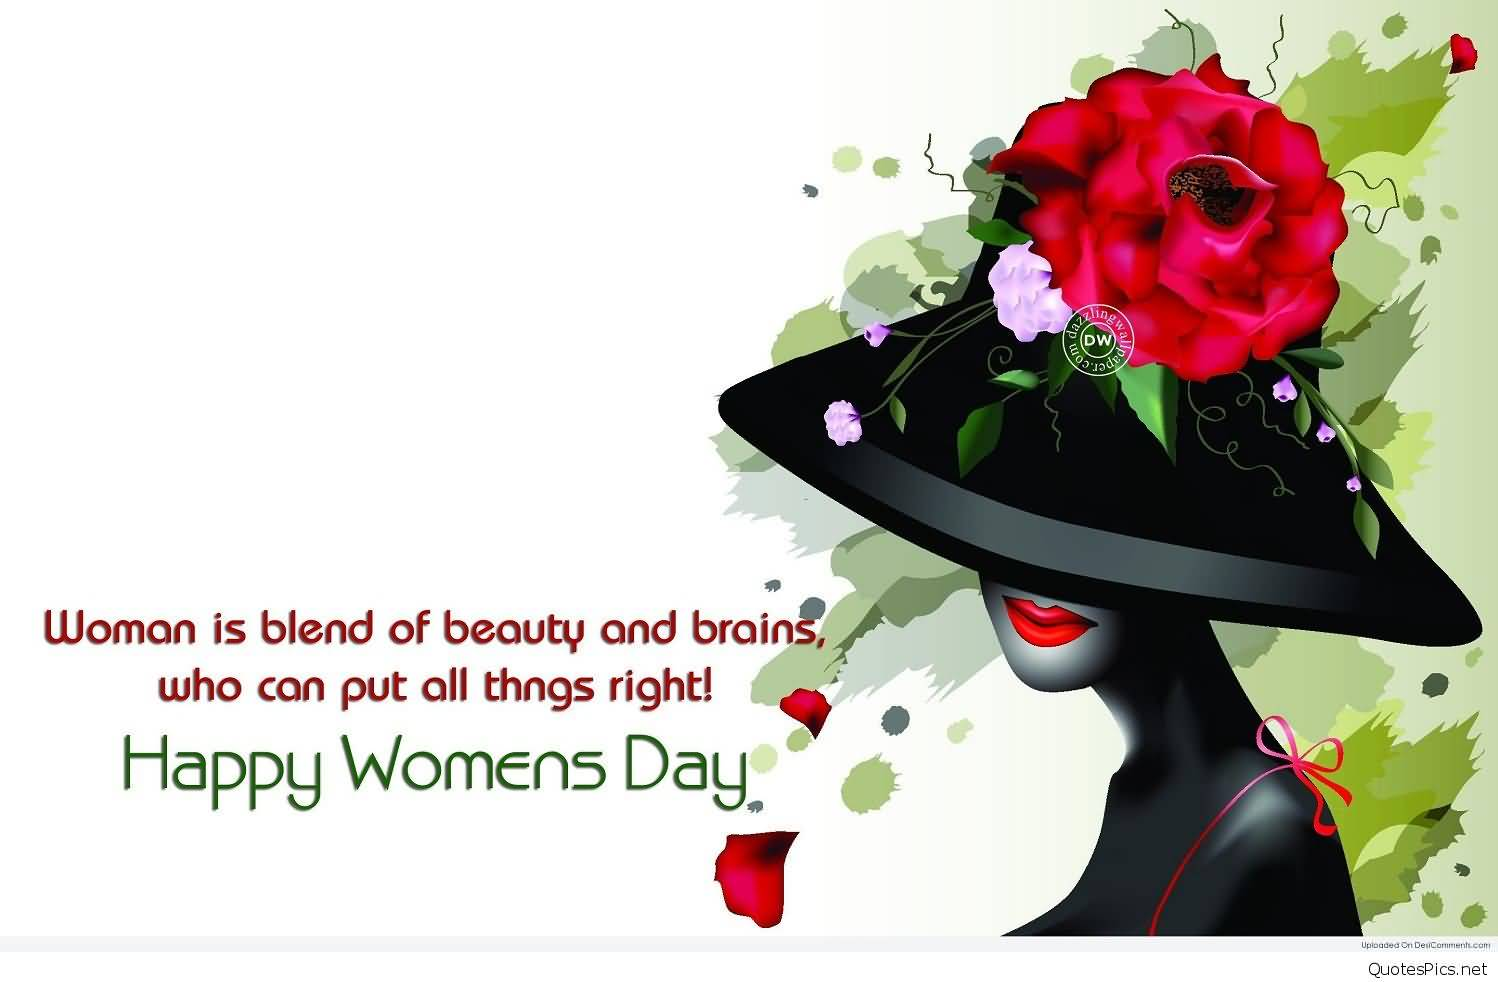 Woman Is Blend Of Beauty And Brains Who Can Put All Things Right